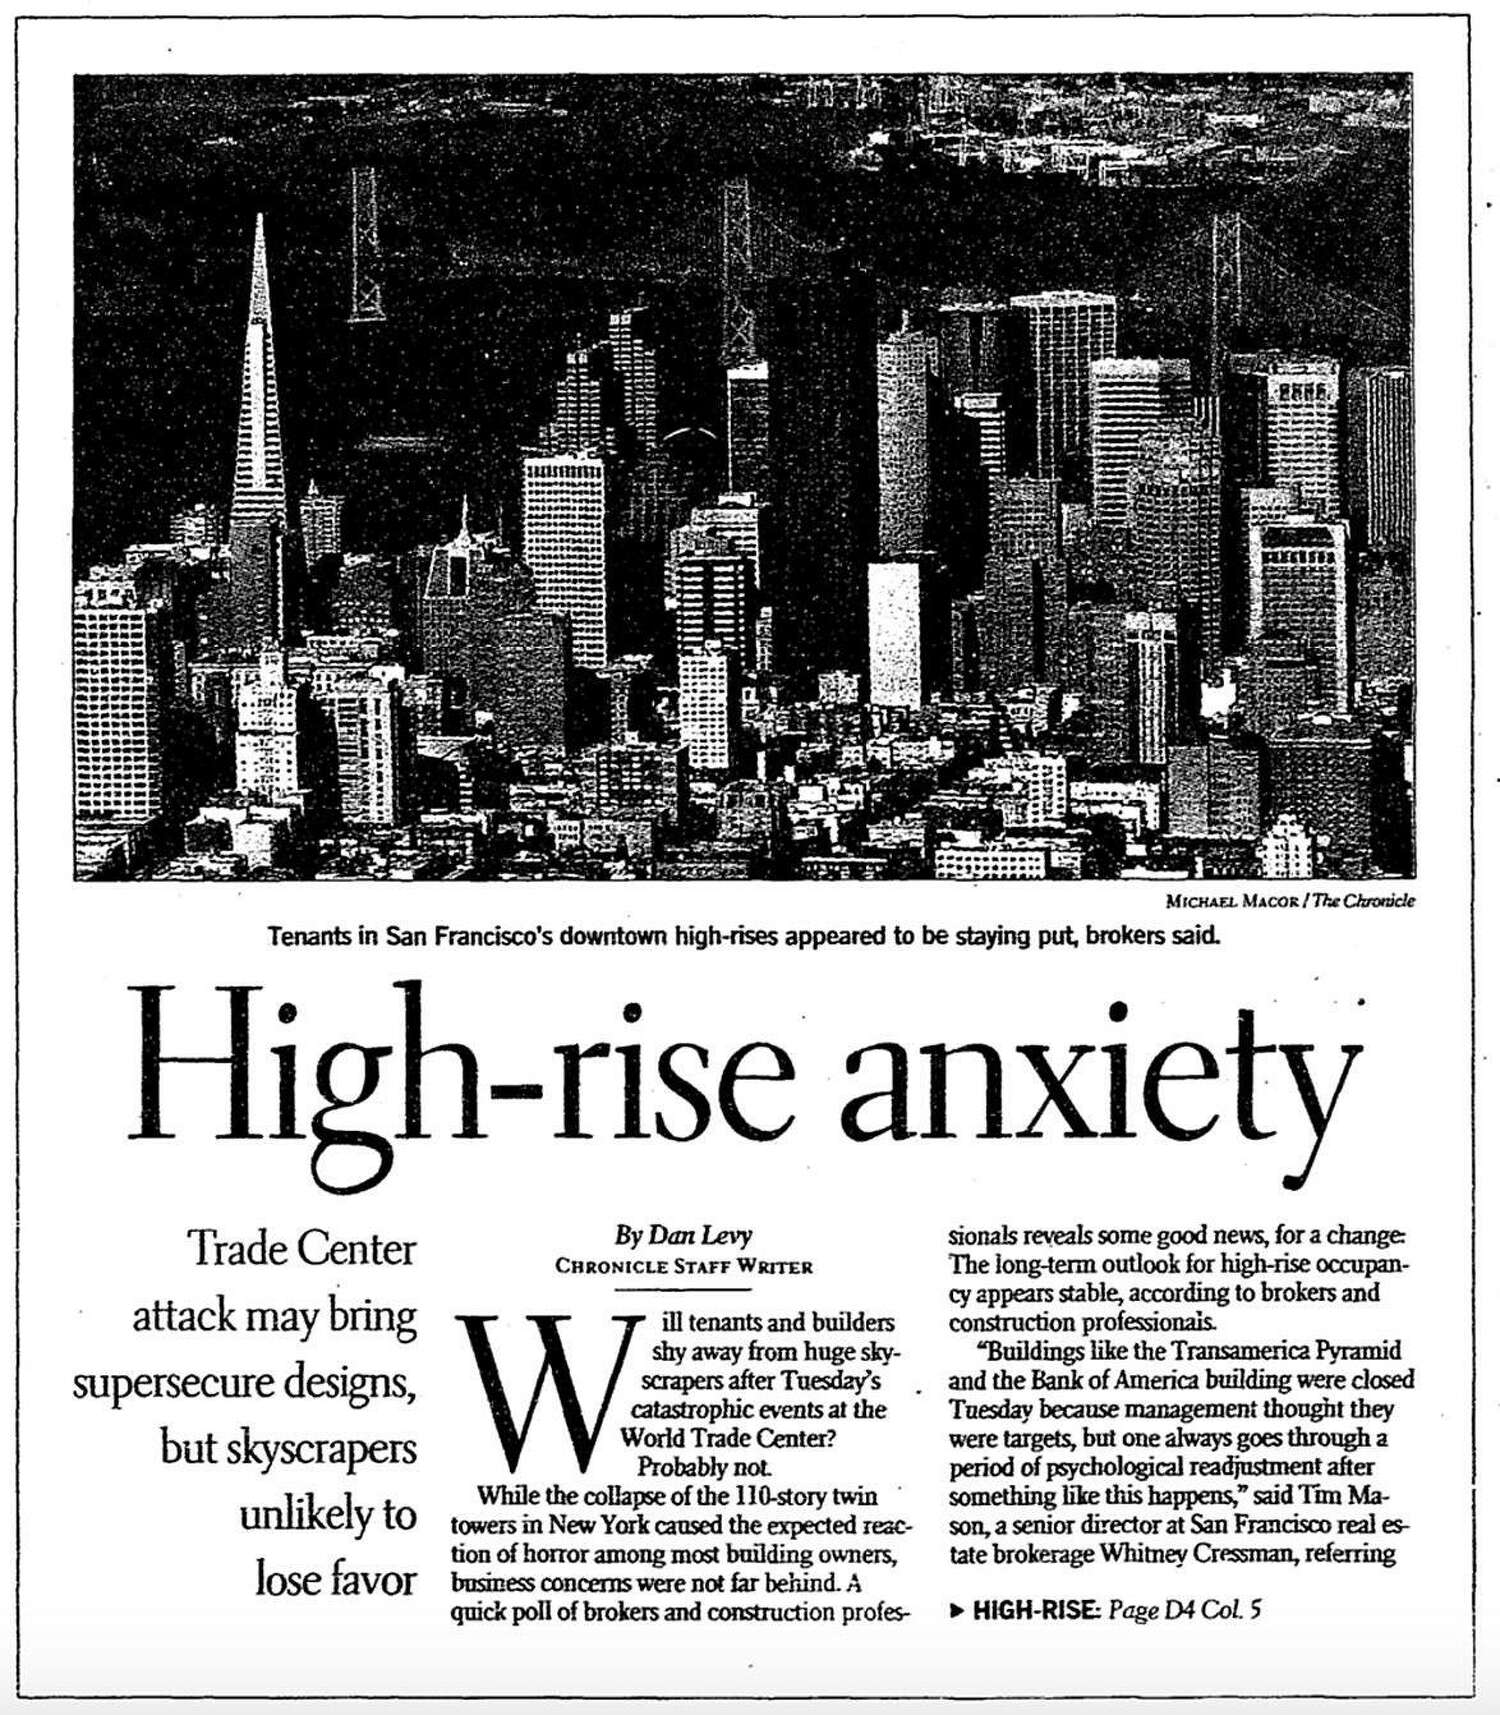 """A S.F. Chronicle newspaper article from Sept. 14, 2001 shows the San Francisco skyline with the headline """"High-rise Anxiety."""""""